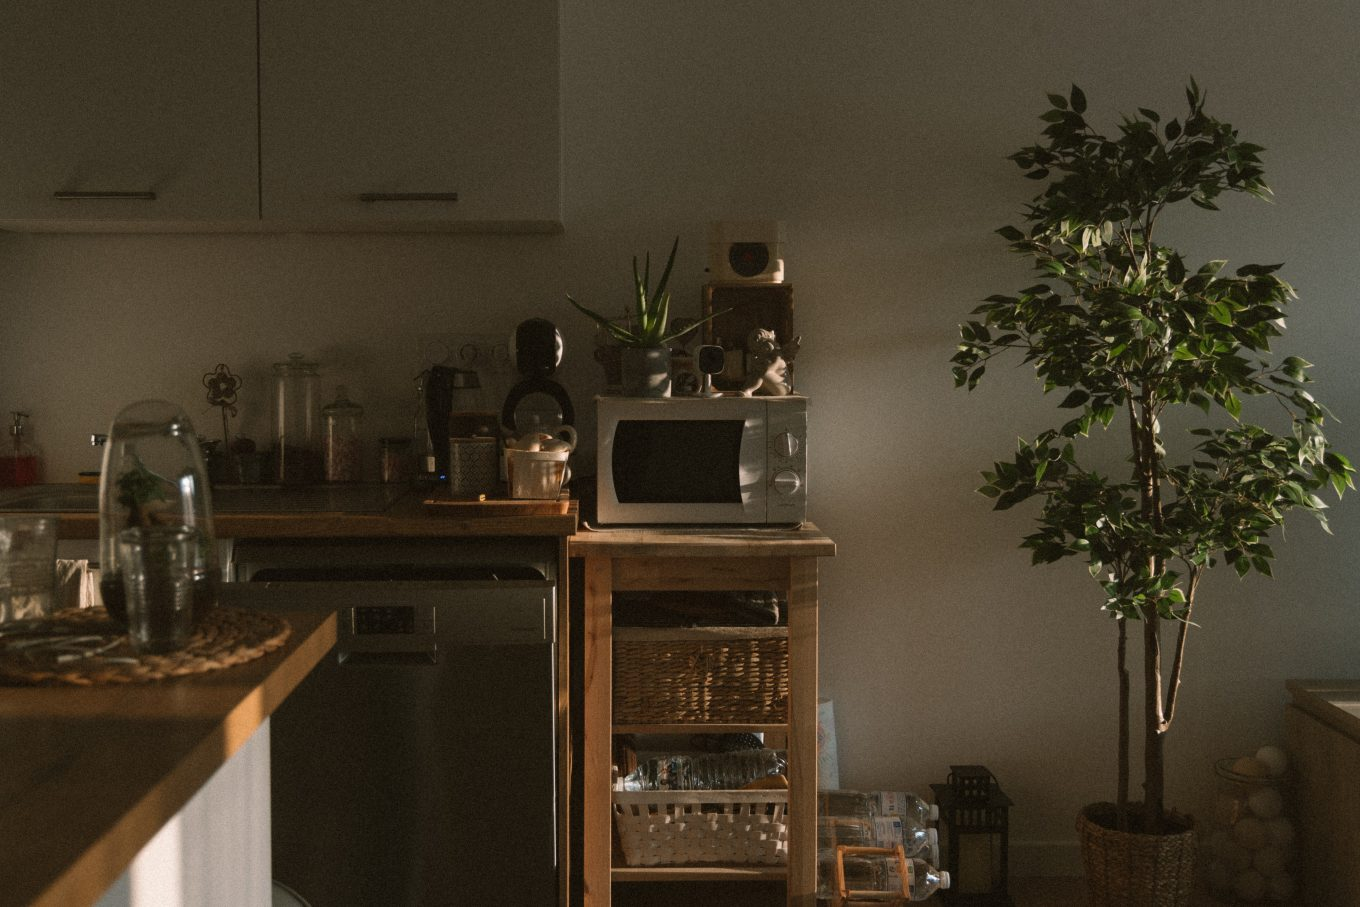 silver microwave oven on brown wooden kitchen cabinet